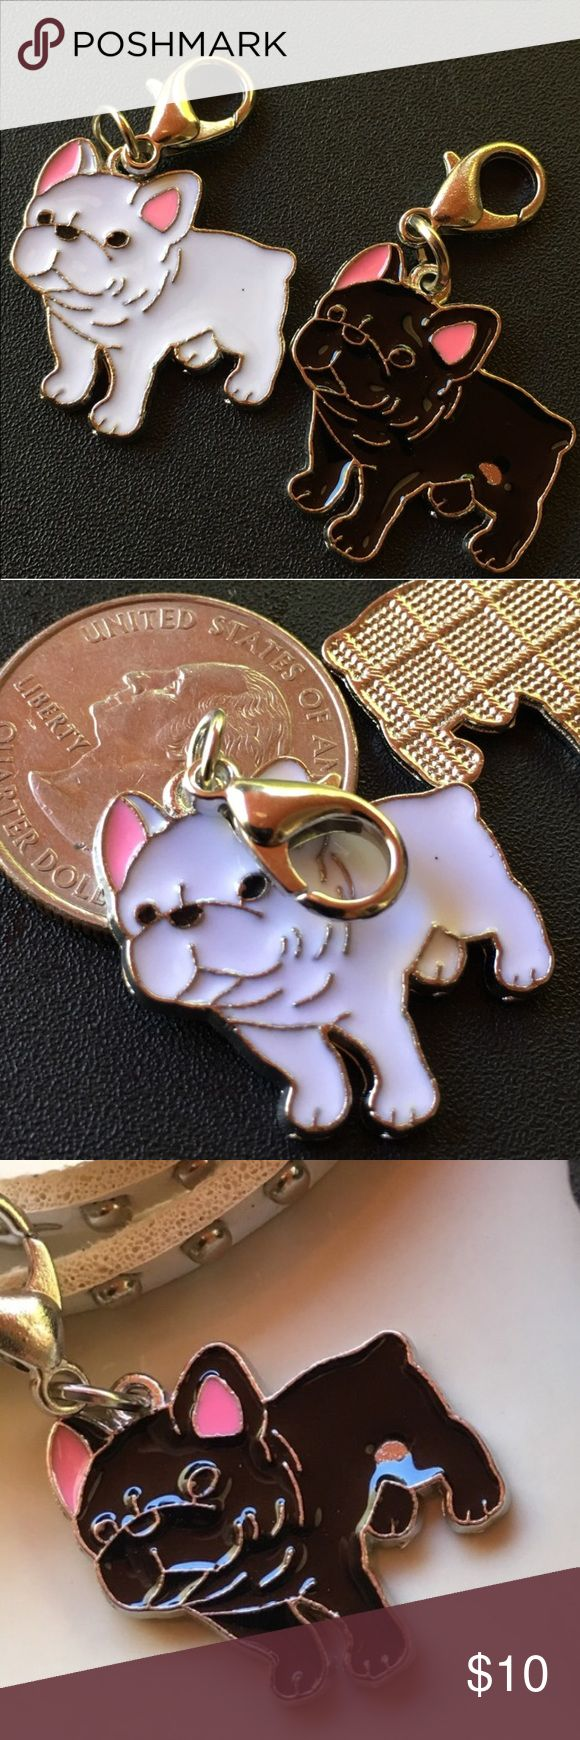 French bulldog clip charm- black or white Great for key chain or to hang anywhere. Enameled on silver colored metal. Price firm unless bundled. Accessories Key & Card Holders